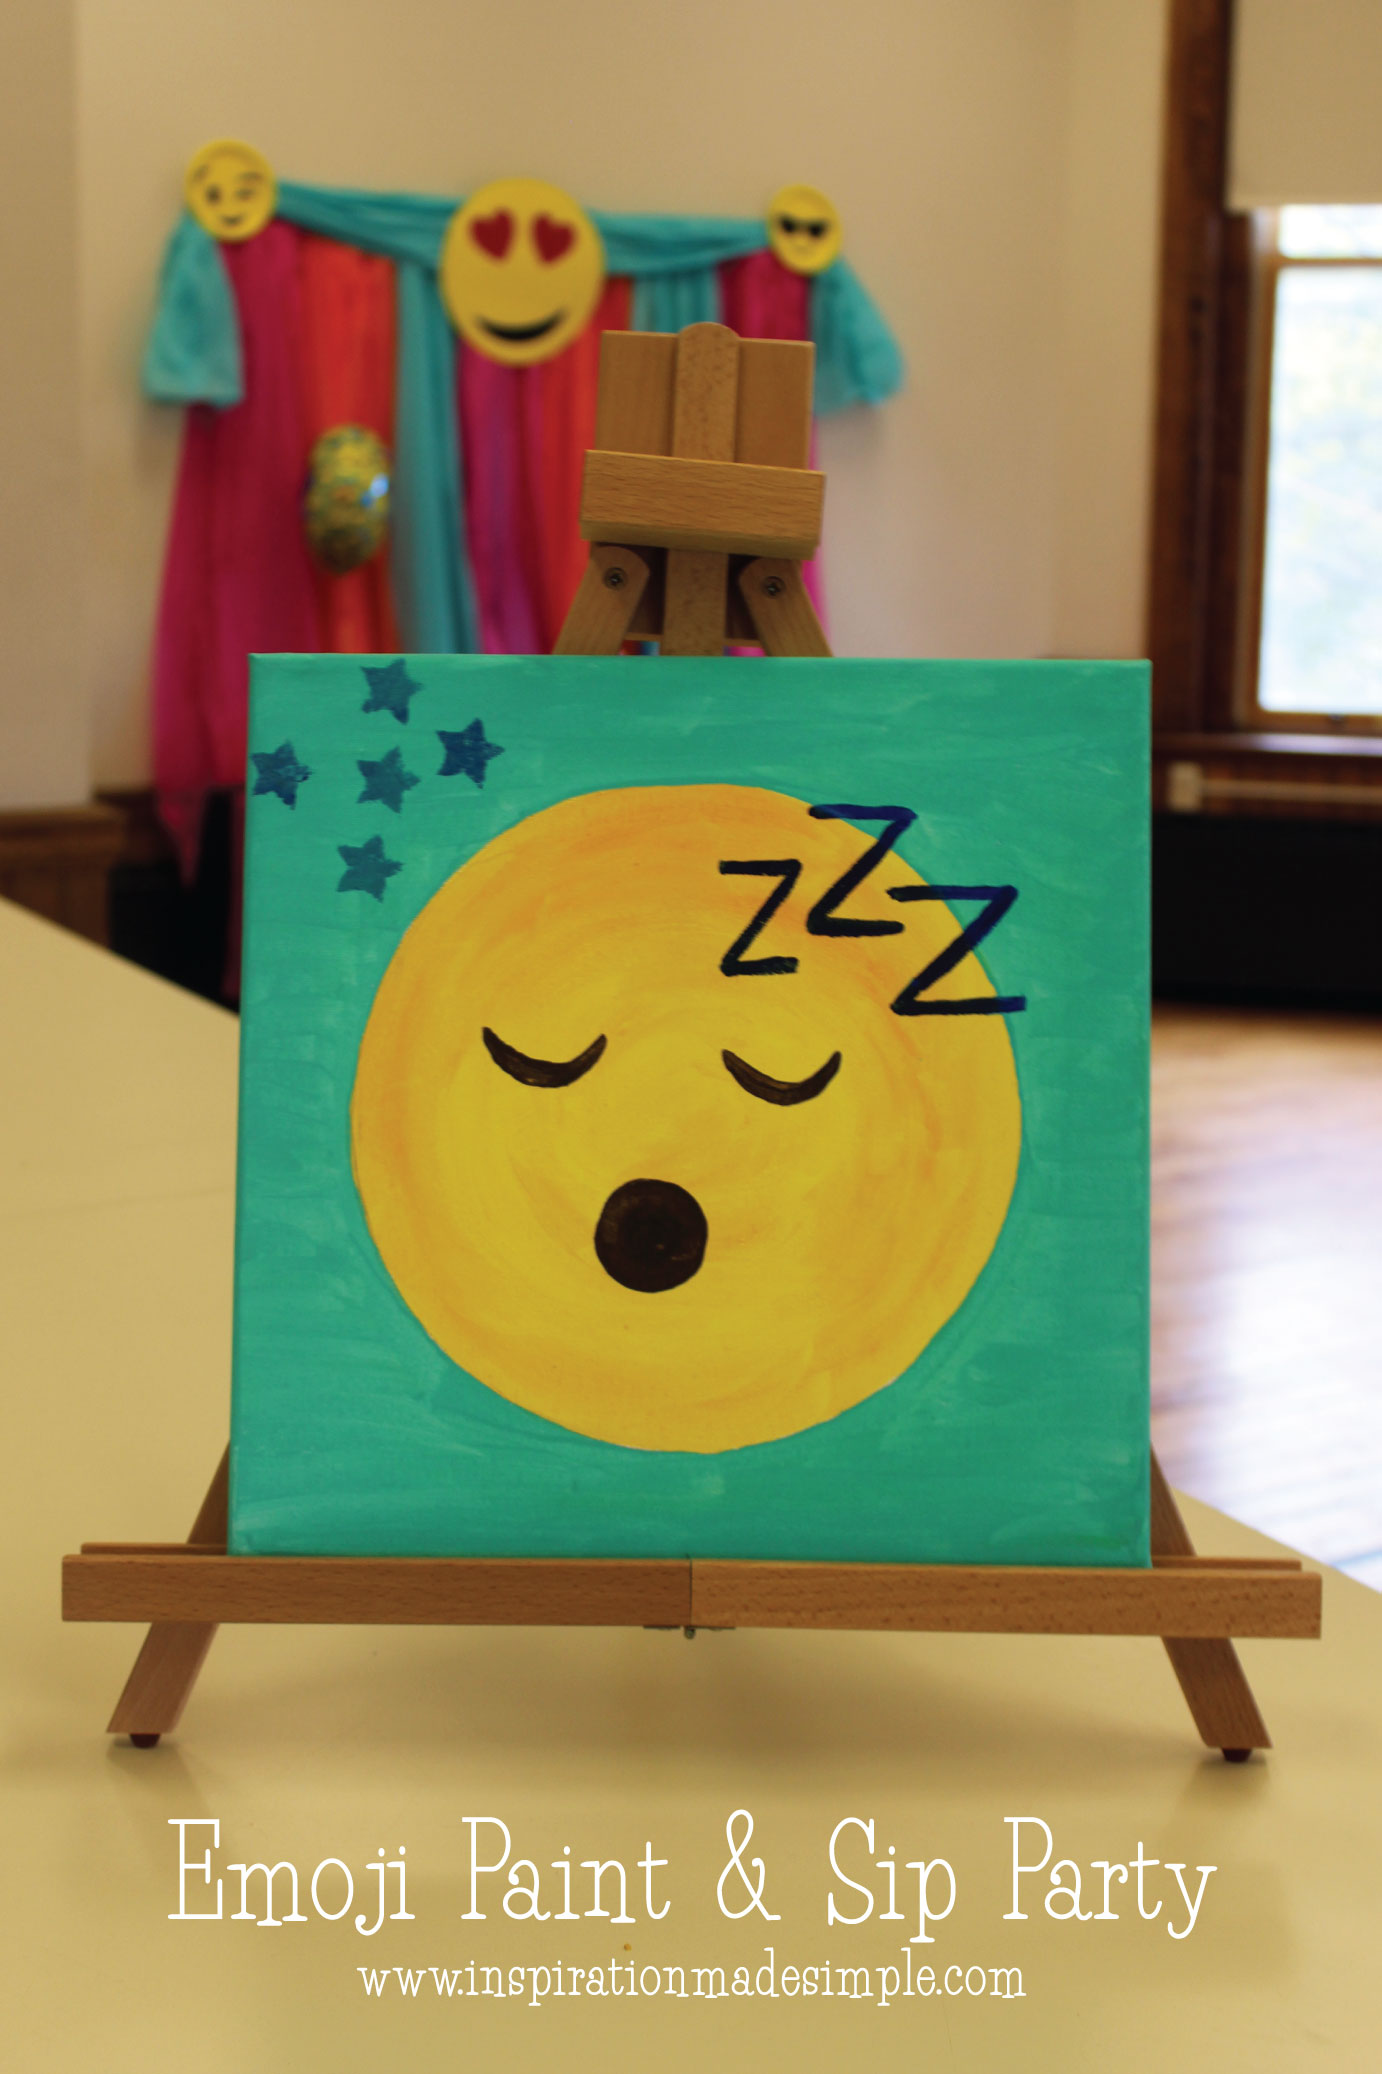 Emoji Paint Sip Party Inspiration Made Simple